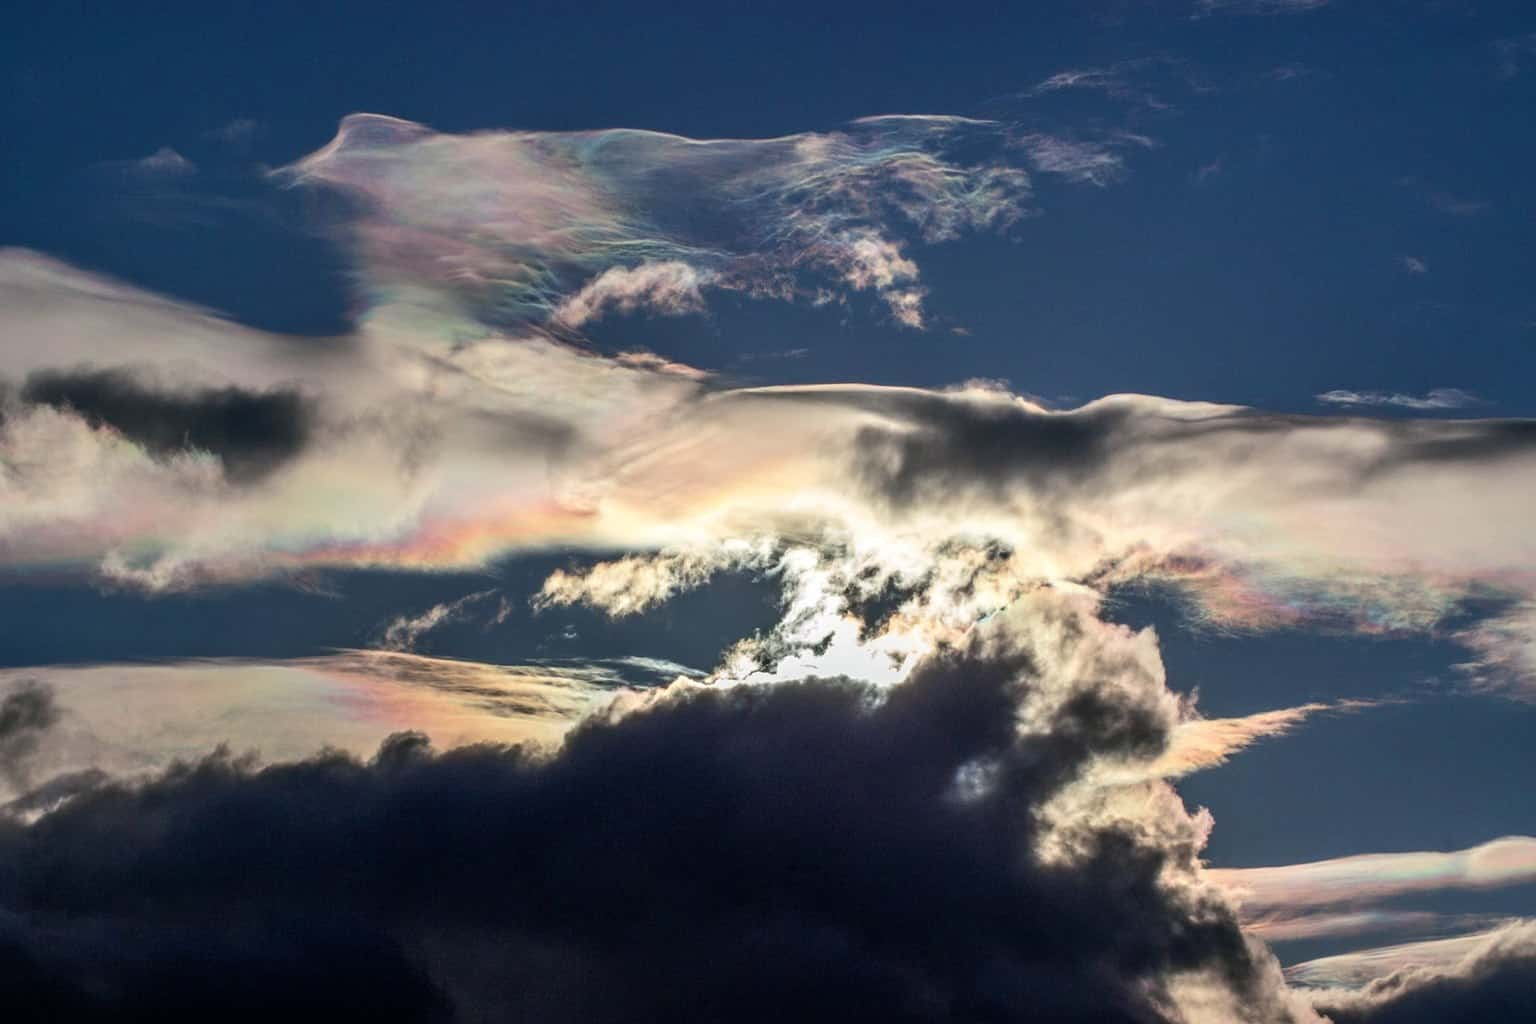 A fun display of some Iridescence clouds today. With an fStop of 20 and shutter at 1/3200 you get a filtered look at the sky(AKA sunglasses) you can really see the distinction in the clouds. And if I didn't have my shades on I wouldn't have got this lucky. Taken today in HamiltonBay Ontario.